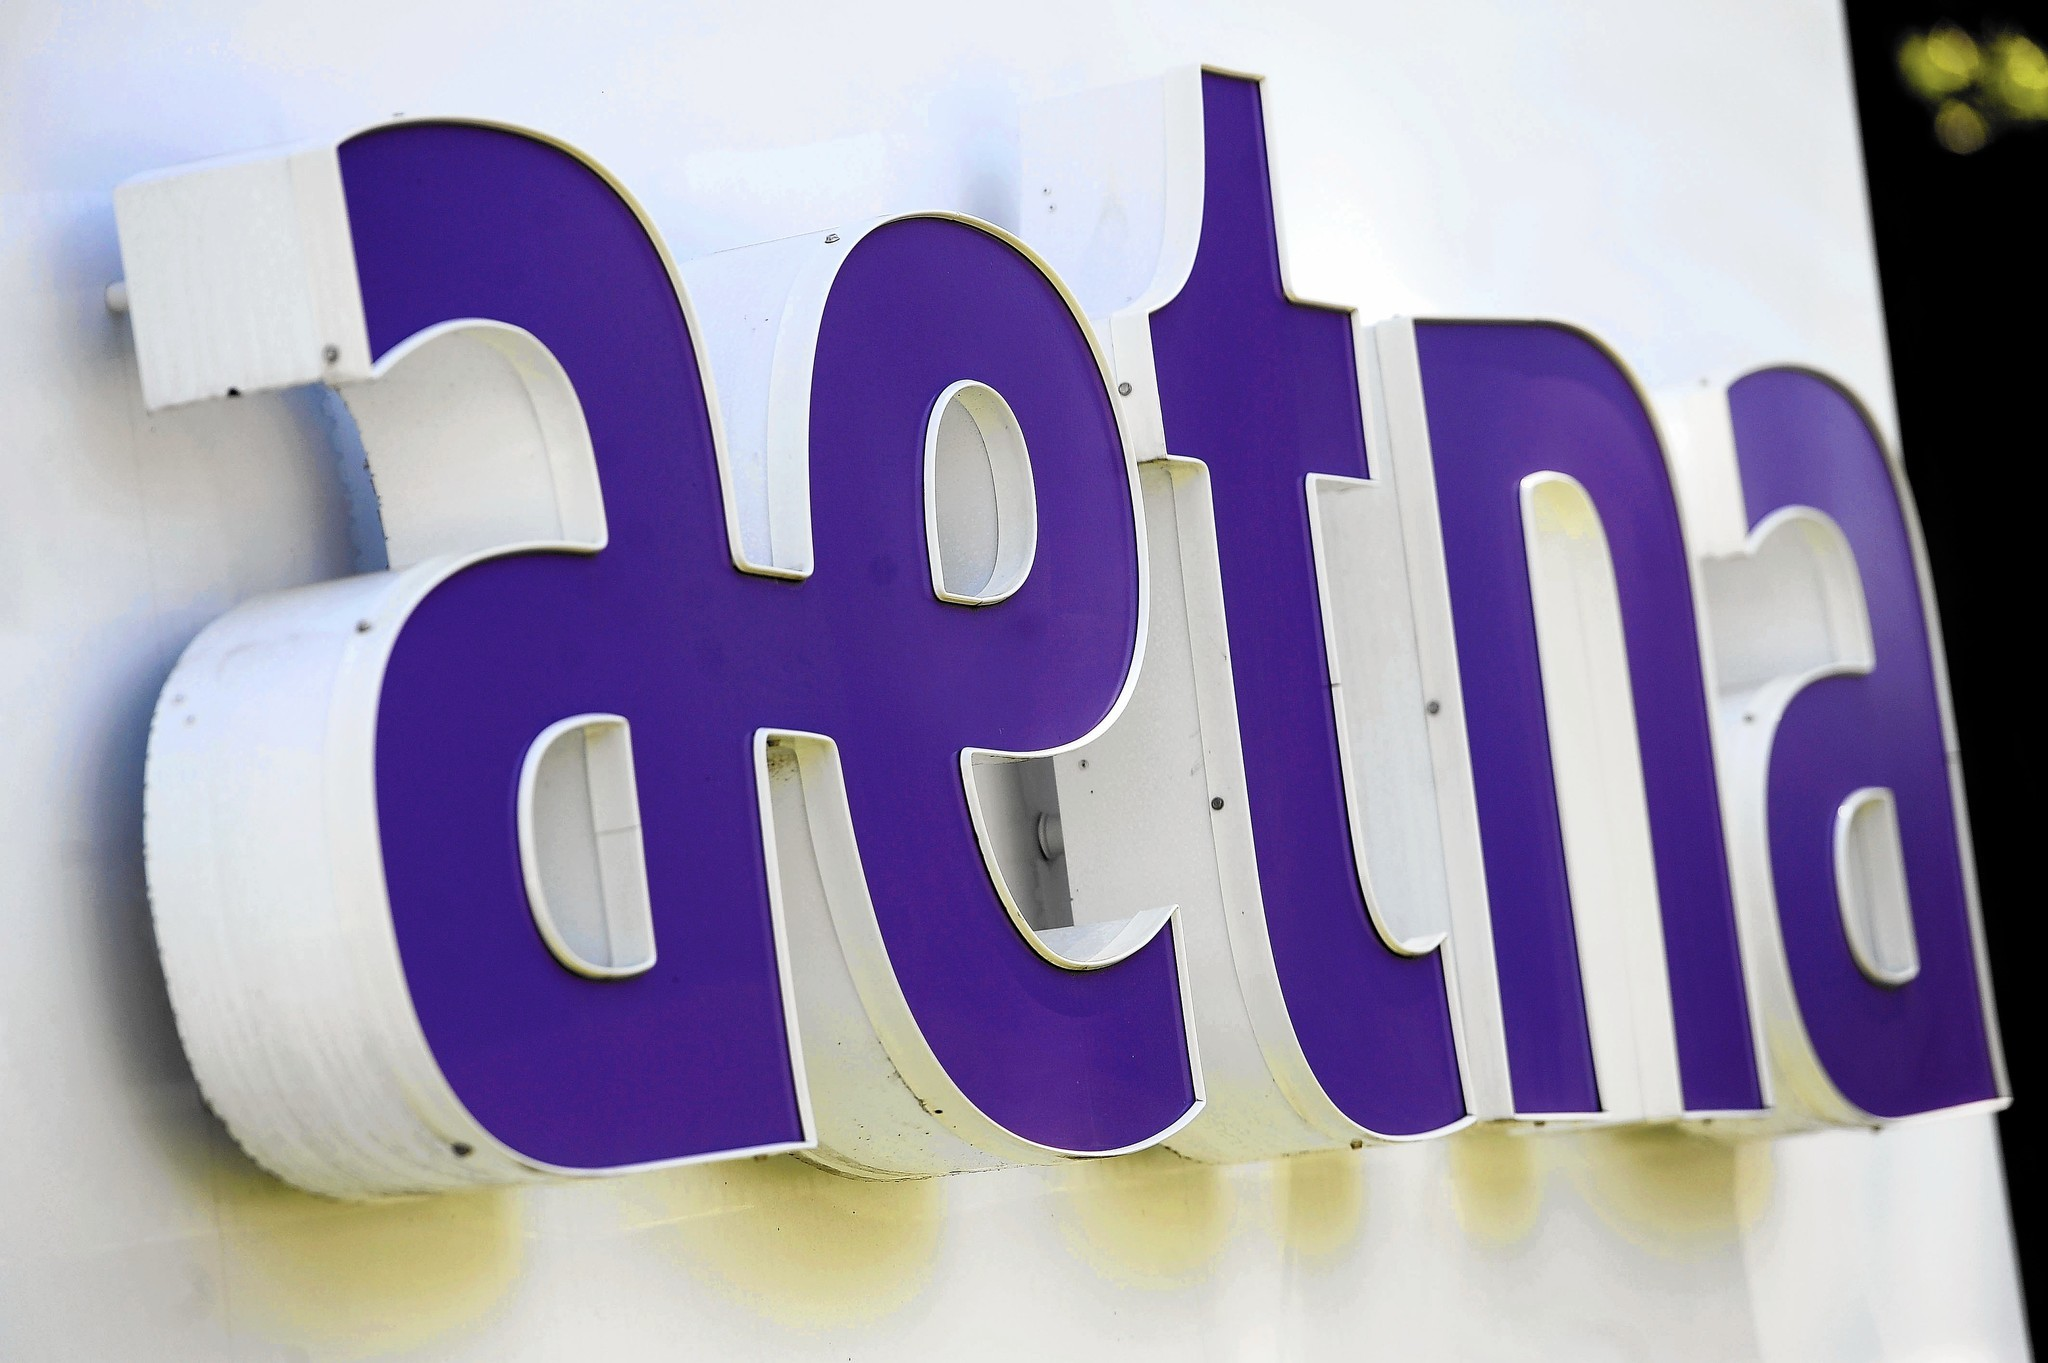 Aetna quits Pennsylvania Obamacare - Lehigh Valley Business